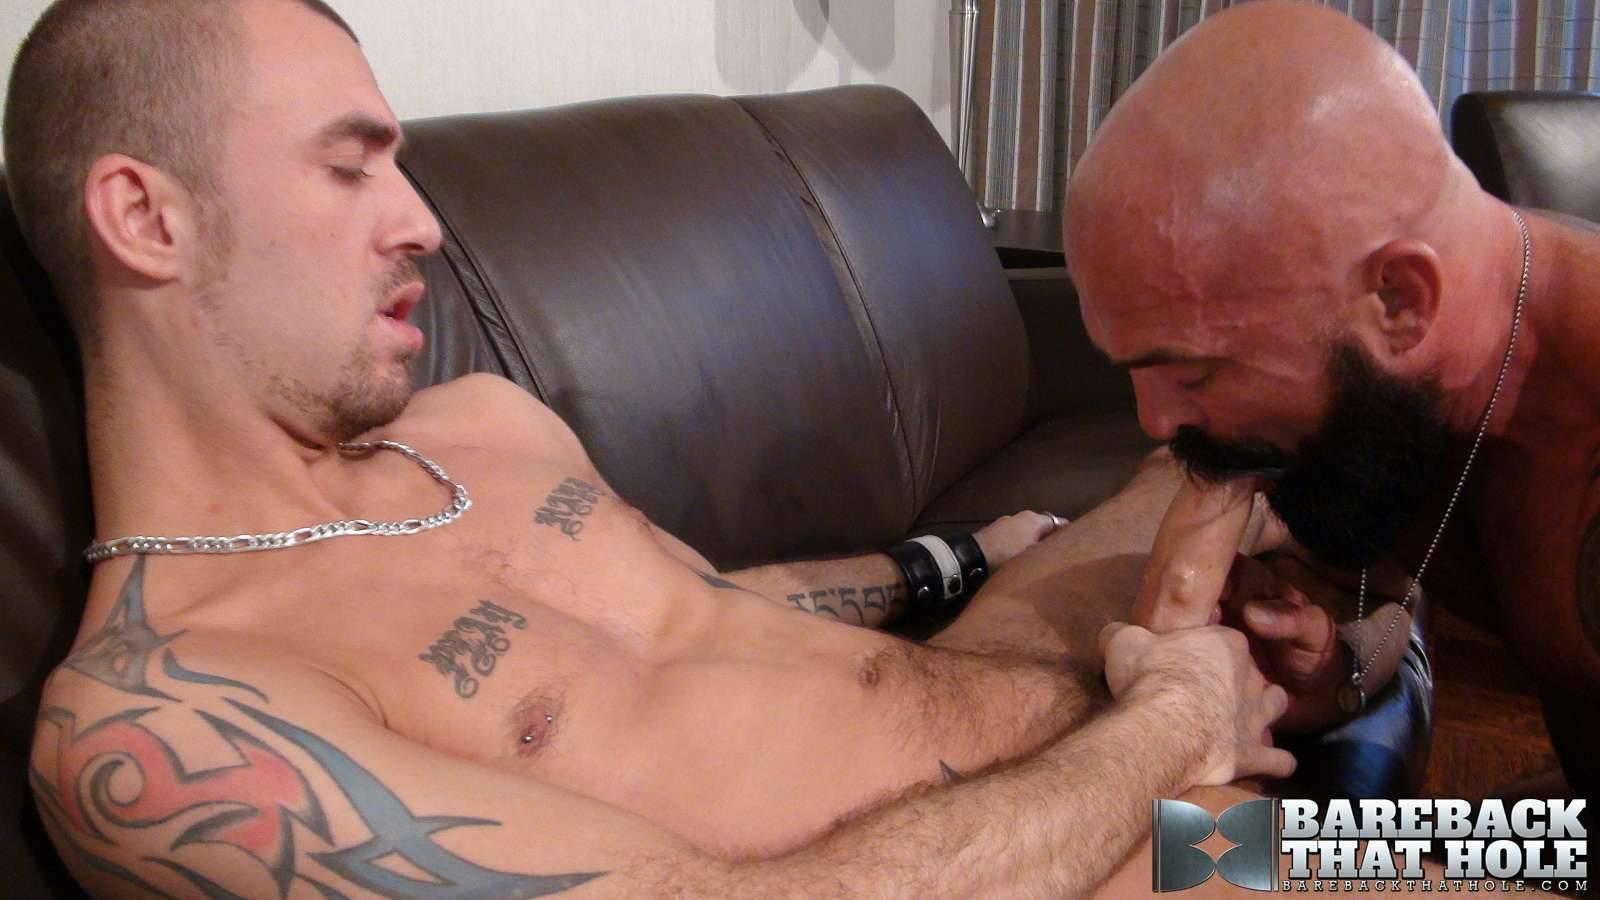 Bareback-That-Hole-Jessy-Karson-and-John-Stache-Daddy-Getting-Barebacked-By-Big-Uncut-Cock-Amateur-Gay-Porn-01.jpg